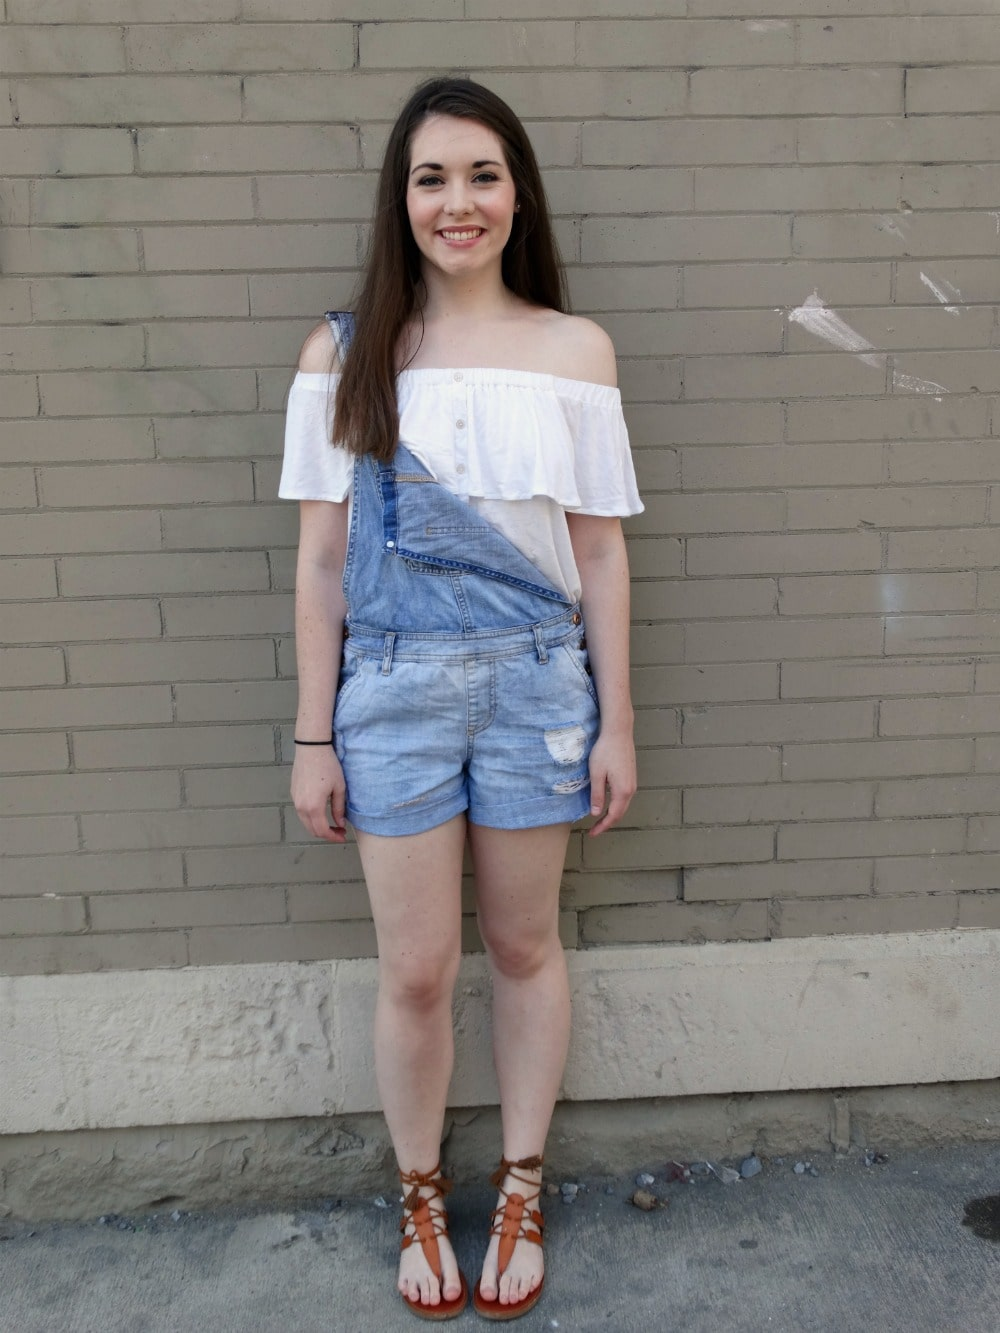 College student at West Virginia University wears an off-the-shoulder top with overall shorts for casual summer style.